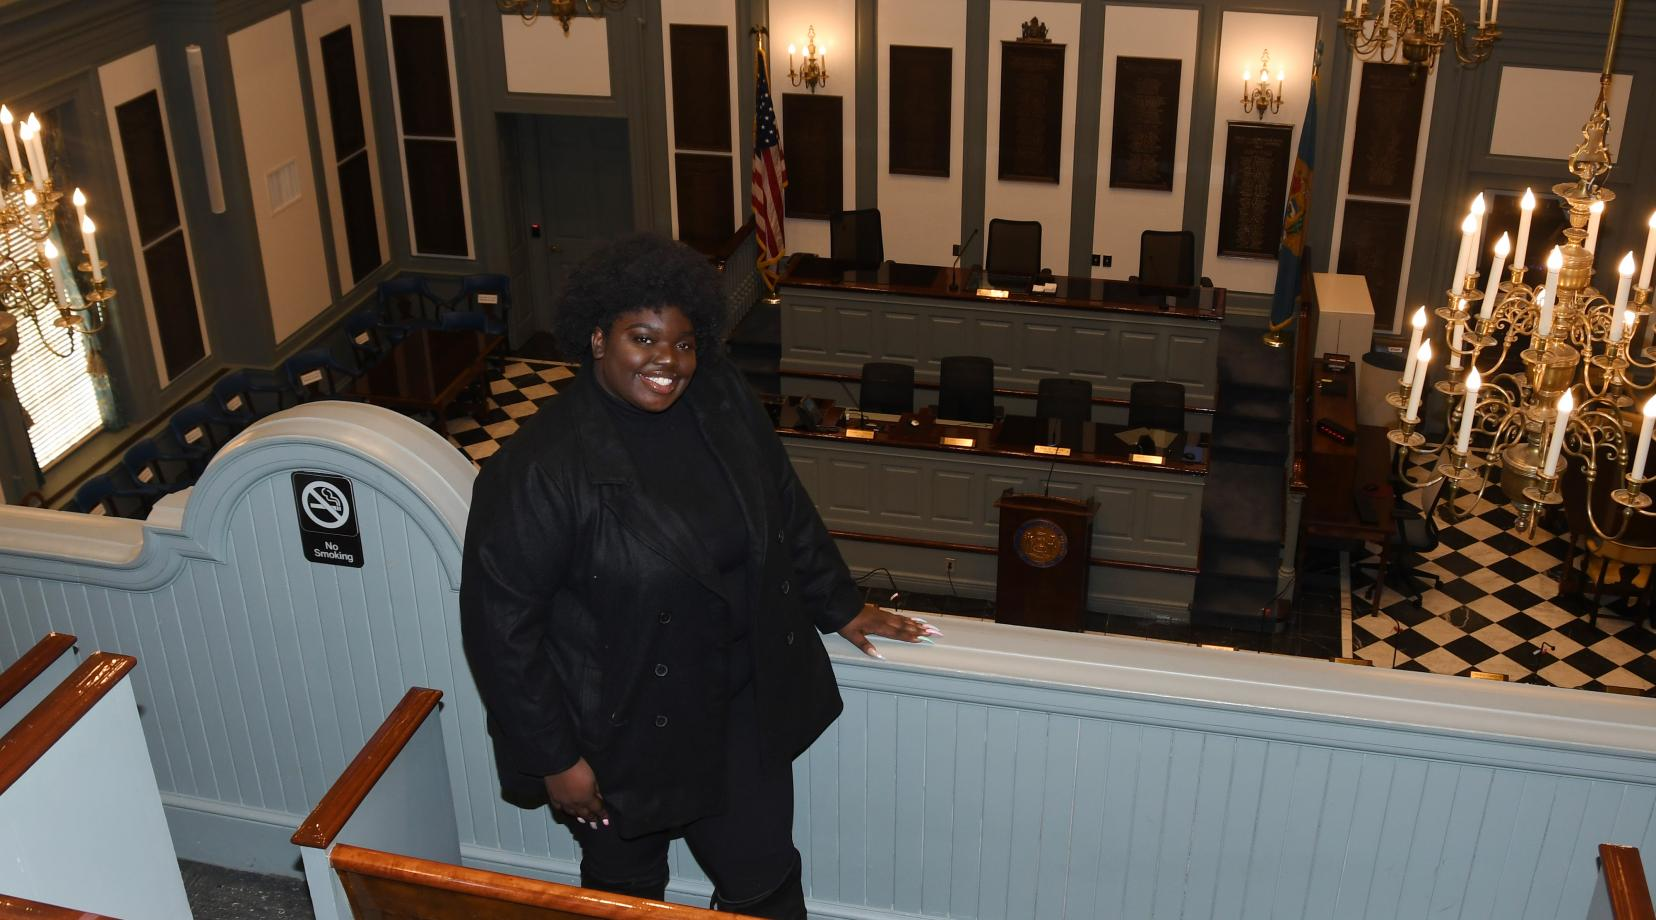 Adriante Carter stands above the Delaware House of Representatives chamber in Legislative Hall in Dover, where she will work represent the University as a Legislative Fellow during her final semester in the spring.